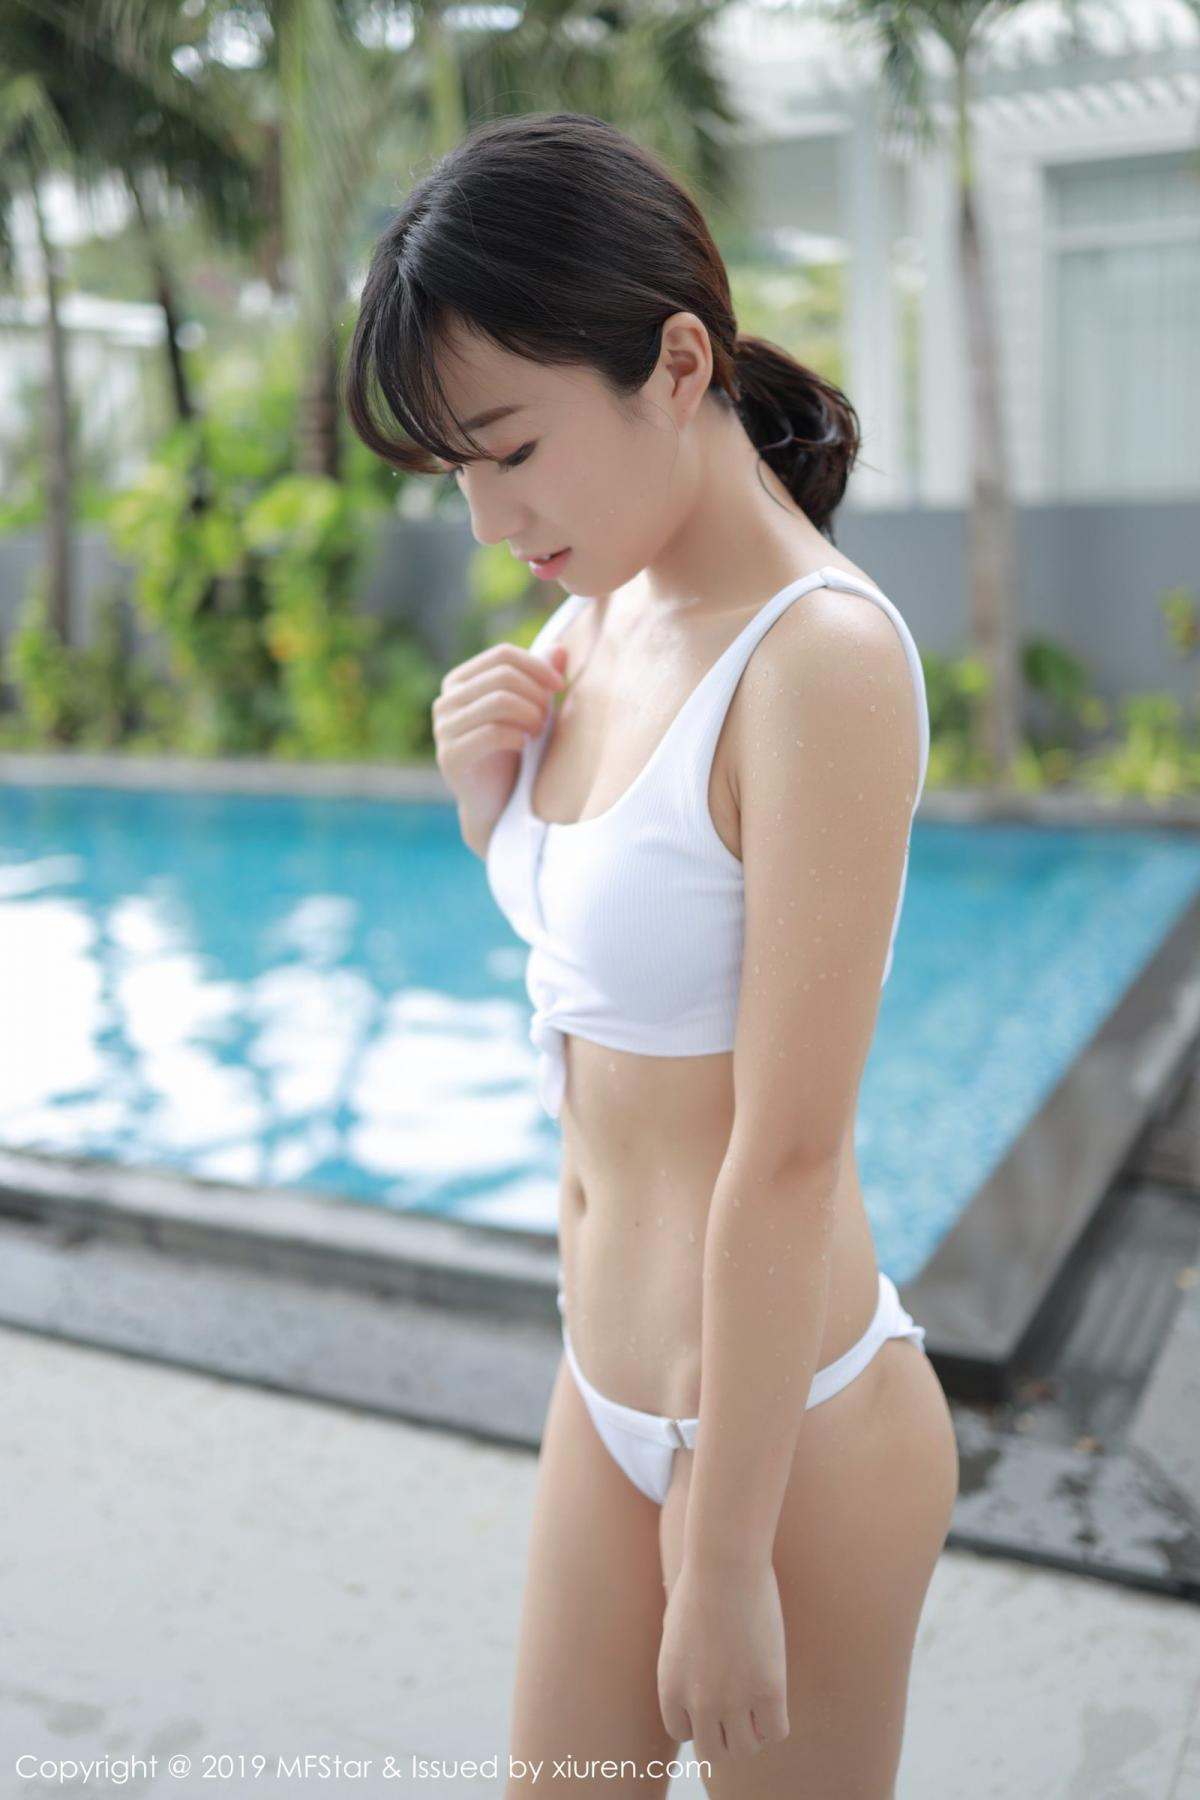 [XiuRen] Vol.214 Cang Jing You Xiang 6P, Bikini, Cang Jing You Xiang, Swim Pool, Xiuren